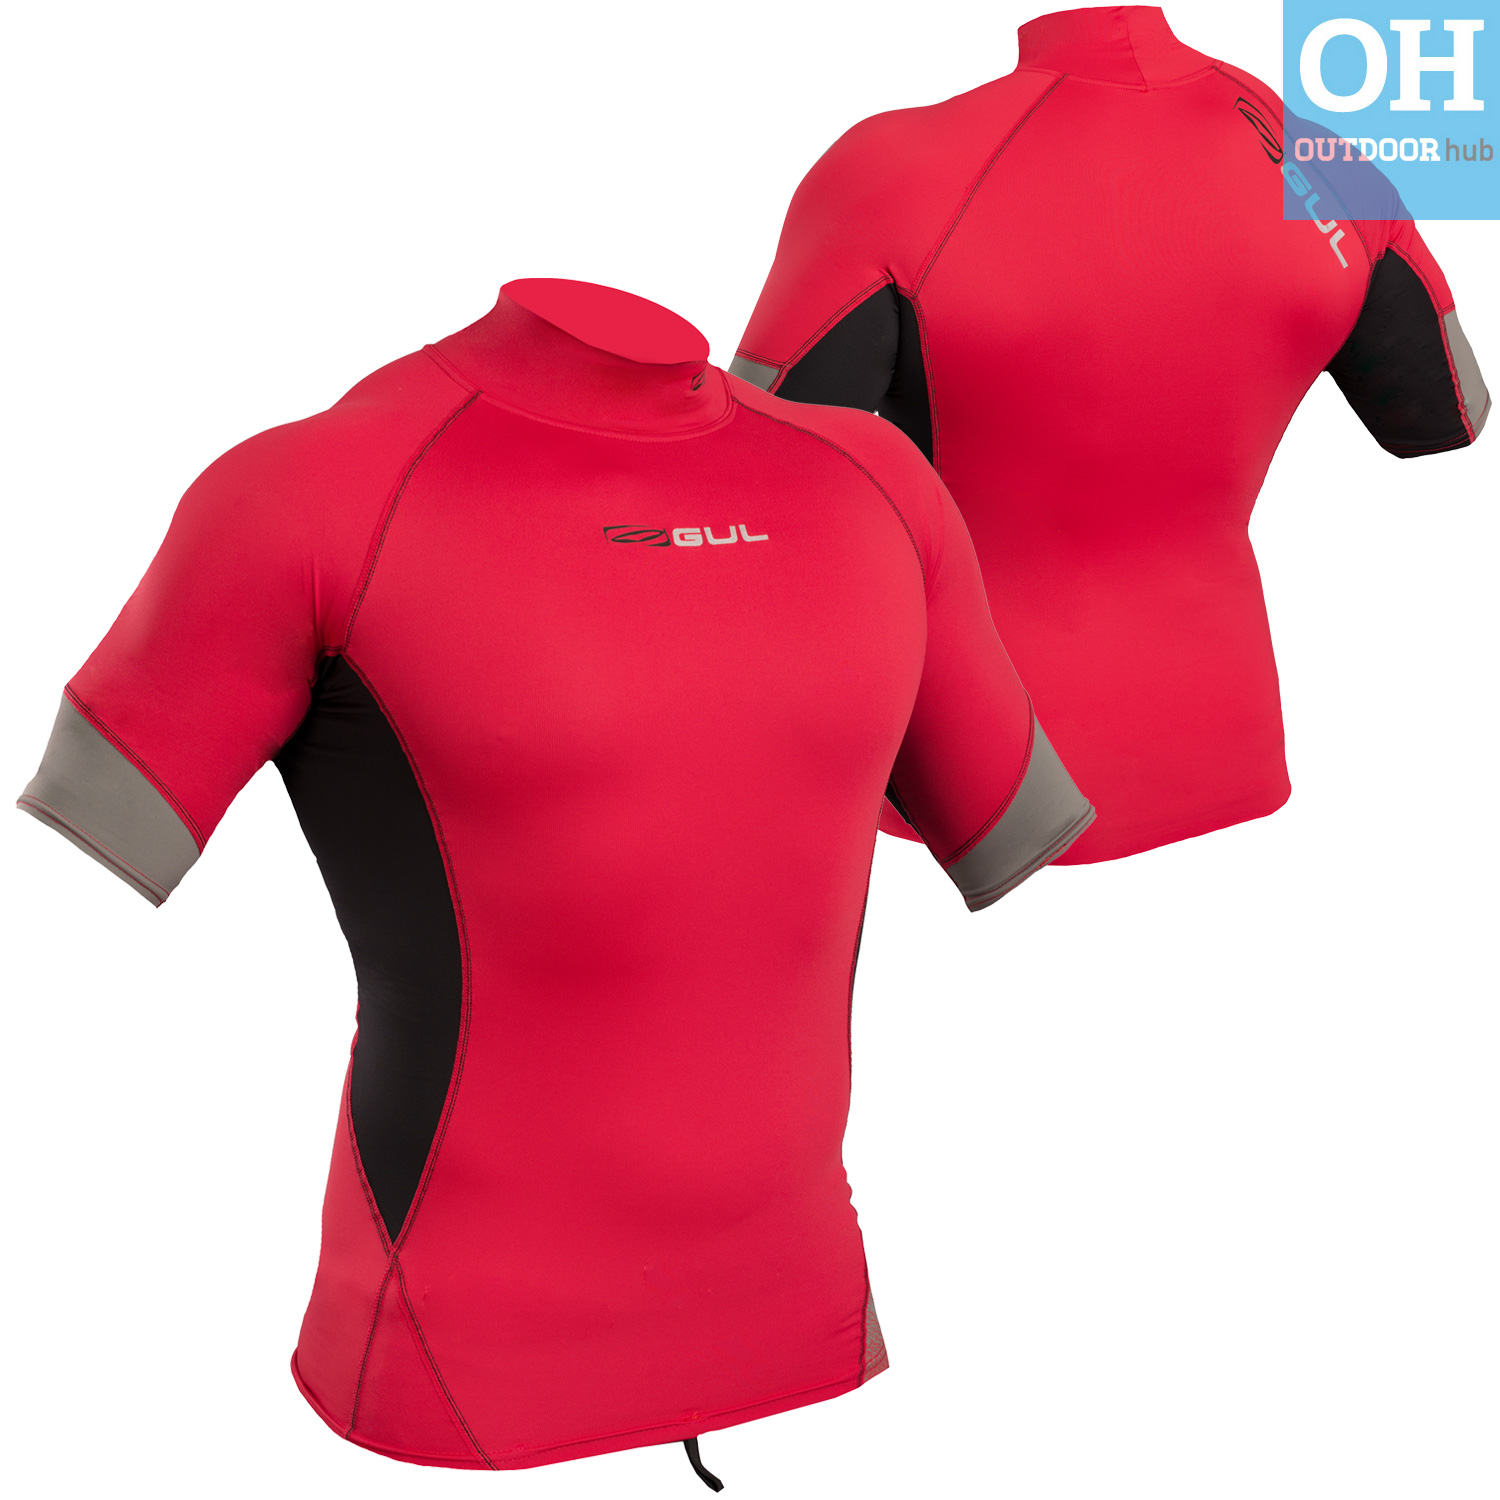 Gul-Xola-Mens-Short-Sleeve-Rash-Guard-Vest-Wetsuit-Top-UV-50-Surf-Swim-Dive thumbnail 33